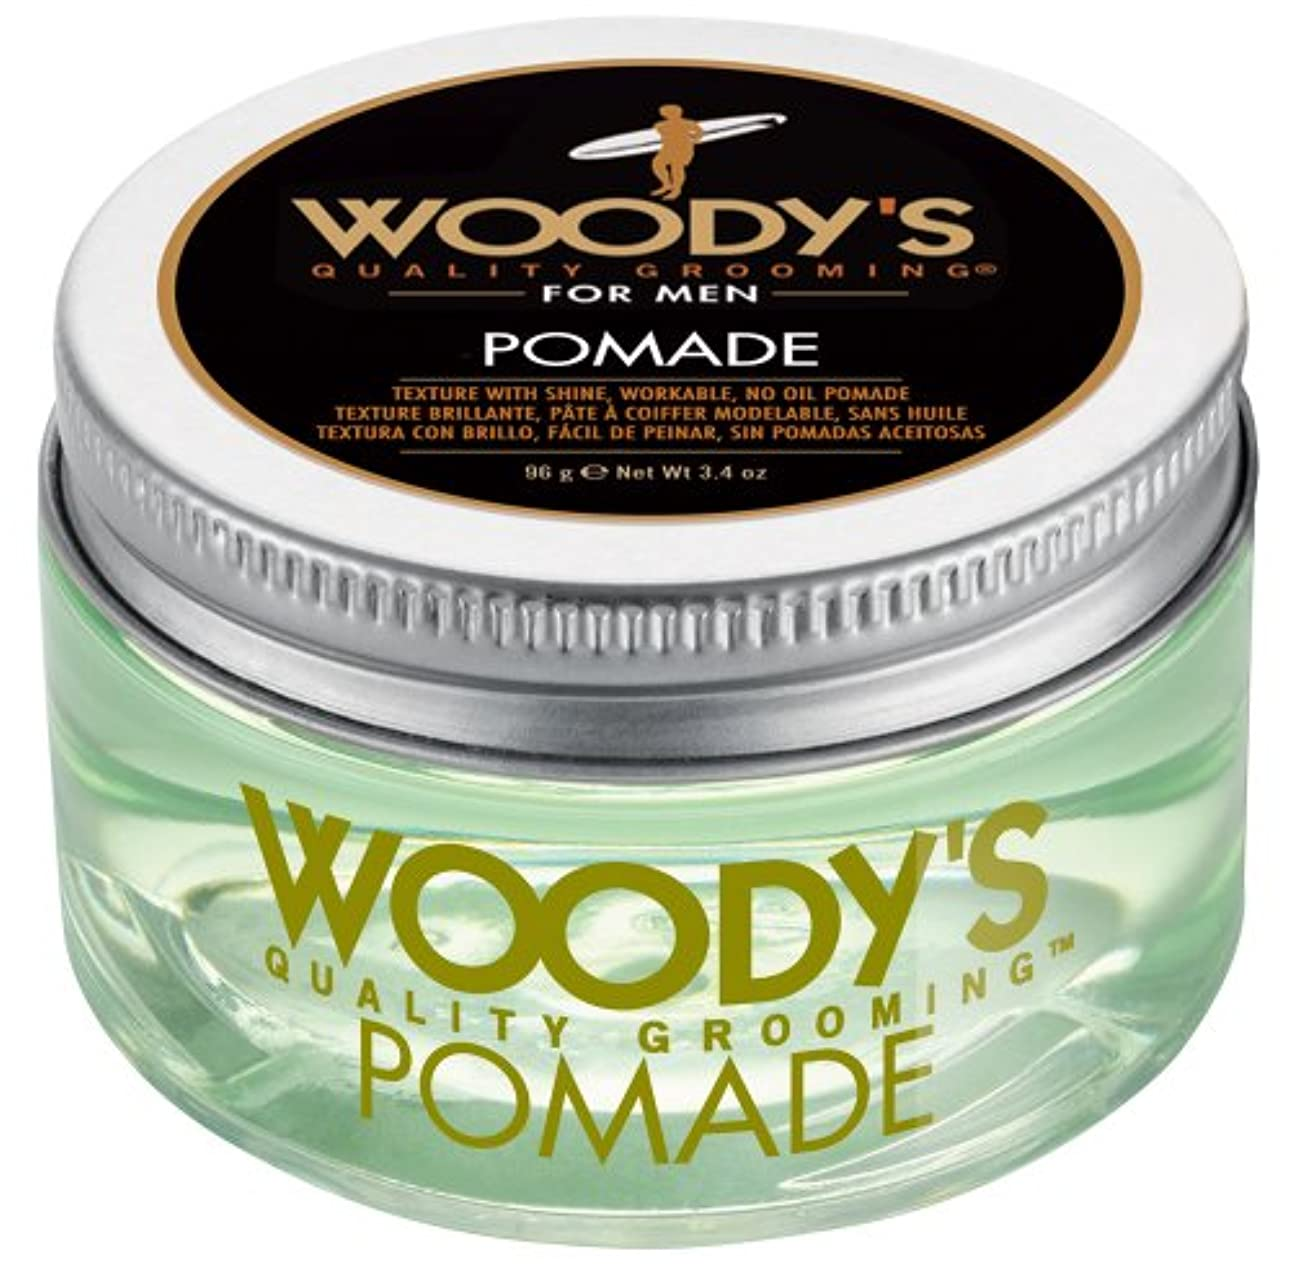 ヒゲクジラ歯葉を拾うWoody's Pomade for Men, Pomade, 3.4 Ounce